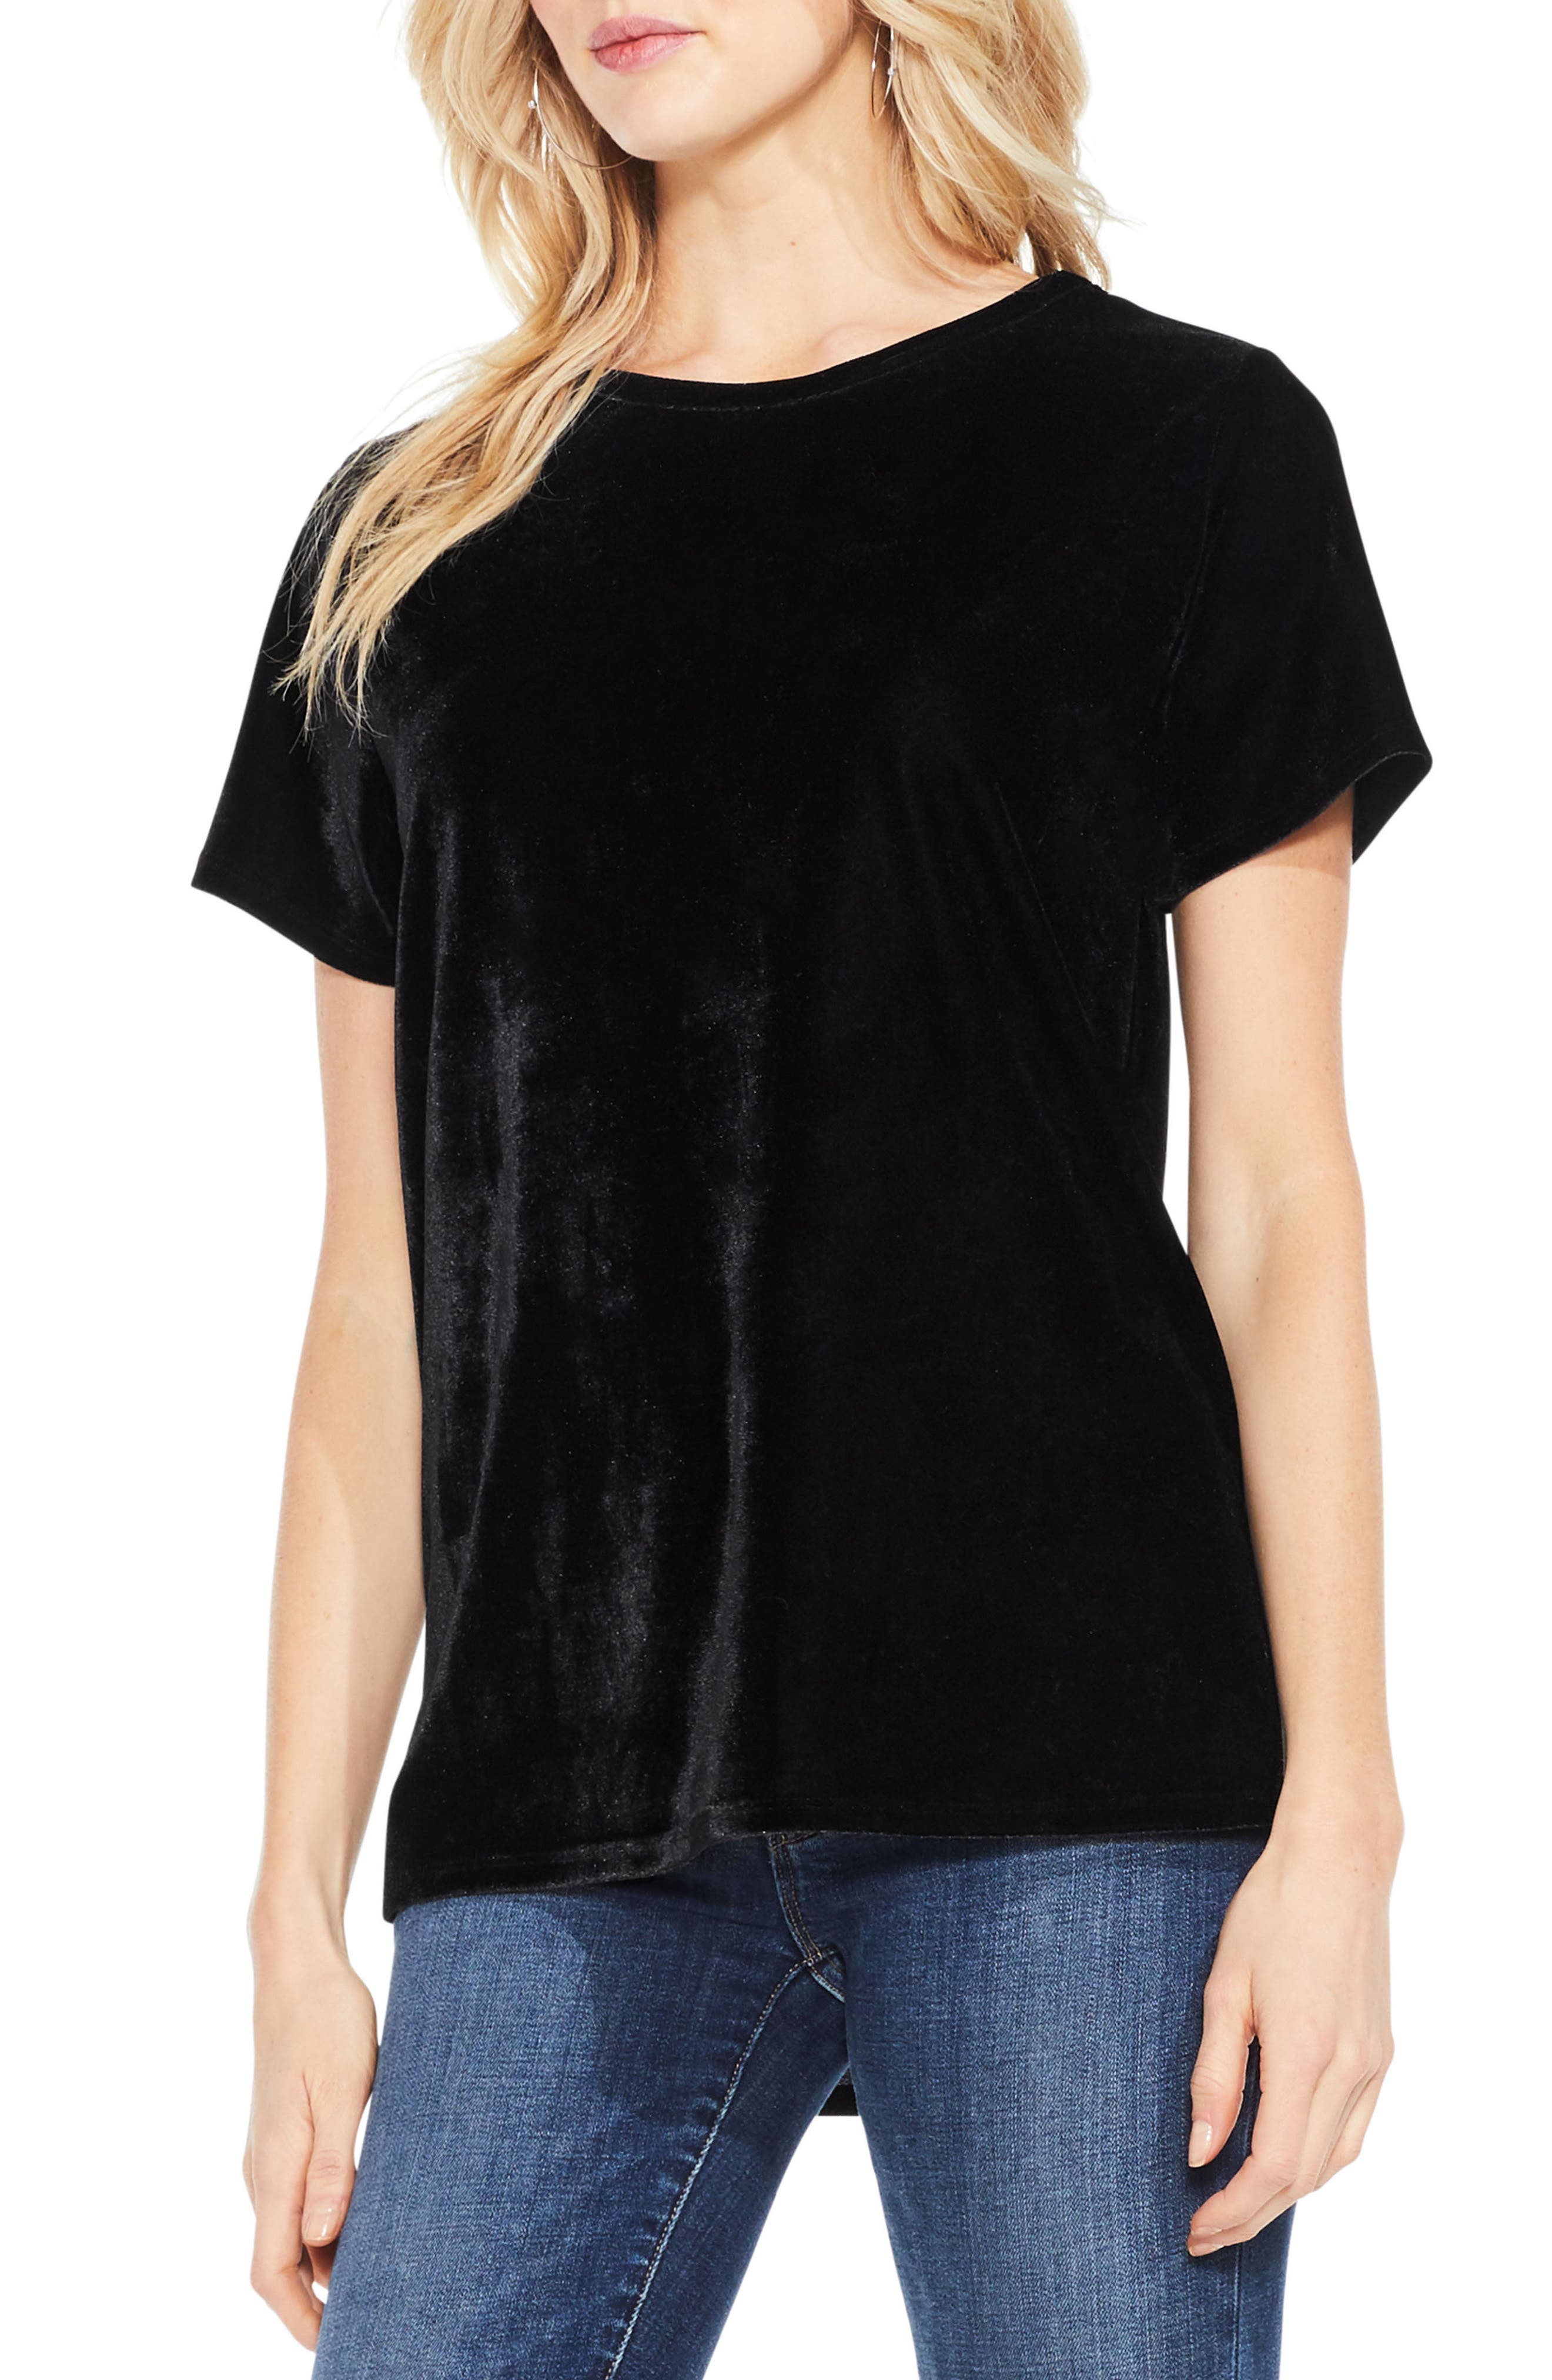 Alternate Image 1 Selected - Two by Vince Camuto Velvet Top